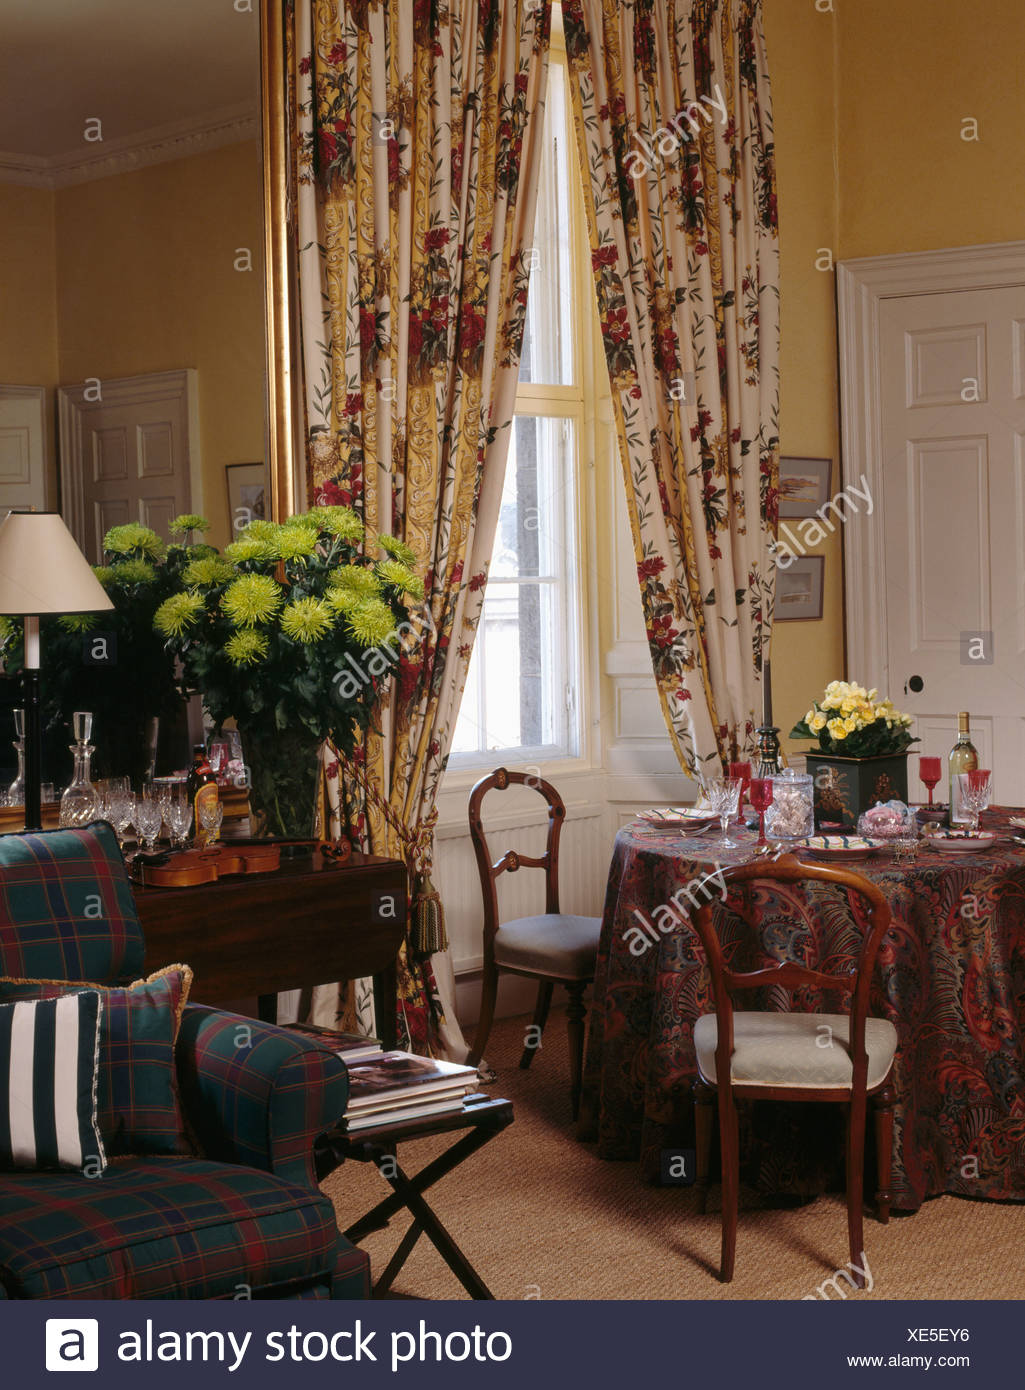 Red Cream Patterned Curtains In Dining Room With Lime Green Chrysanthemums  In Vase On Table In Front Of Mirror